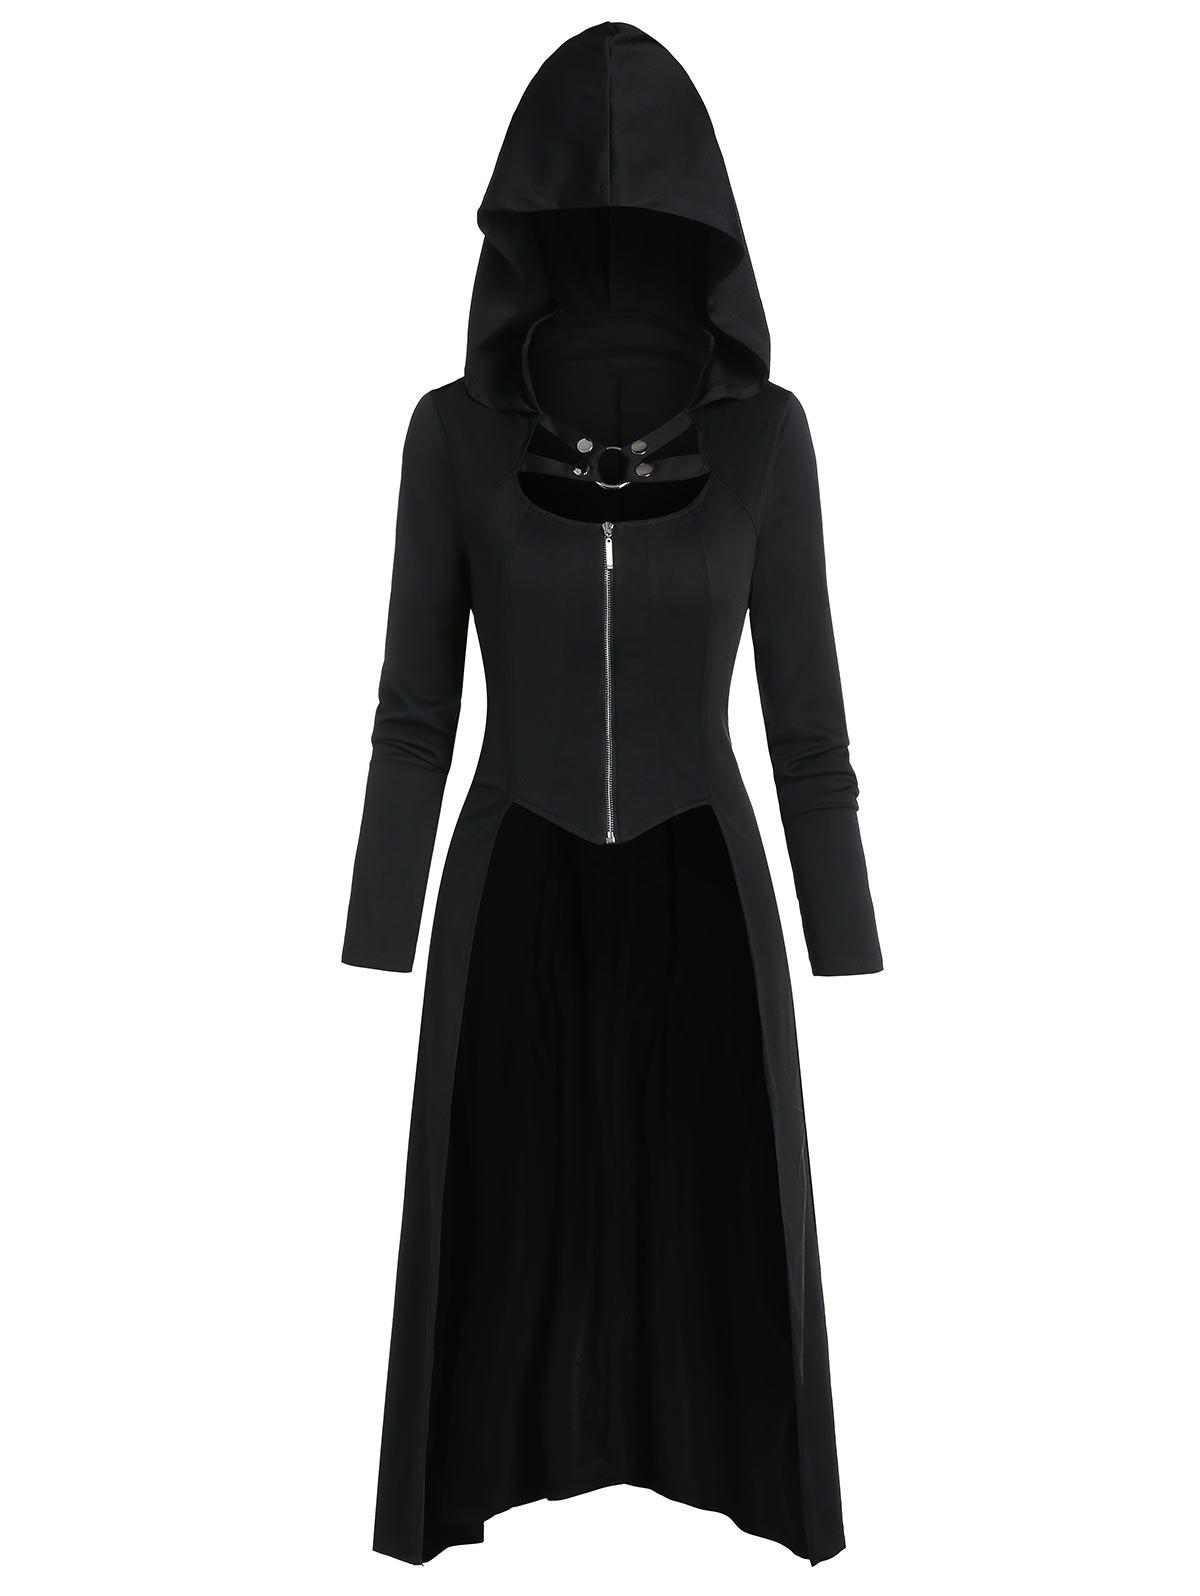 Sale Harness Insert Lace-up Zip Up Hooded High Low Gothic Coat